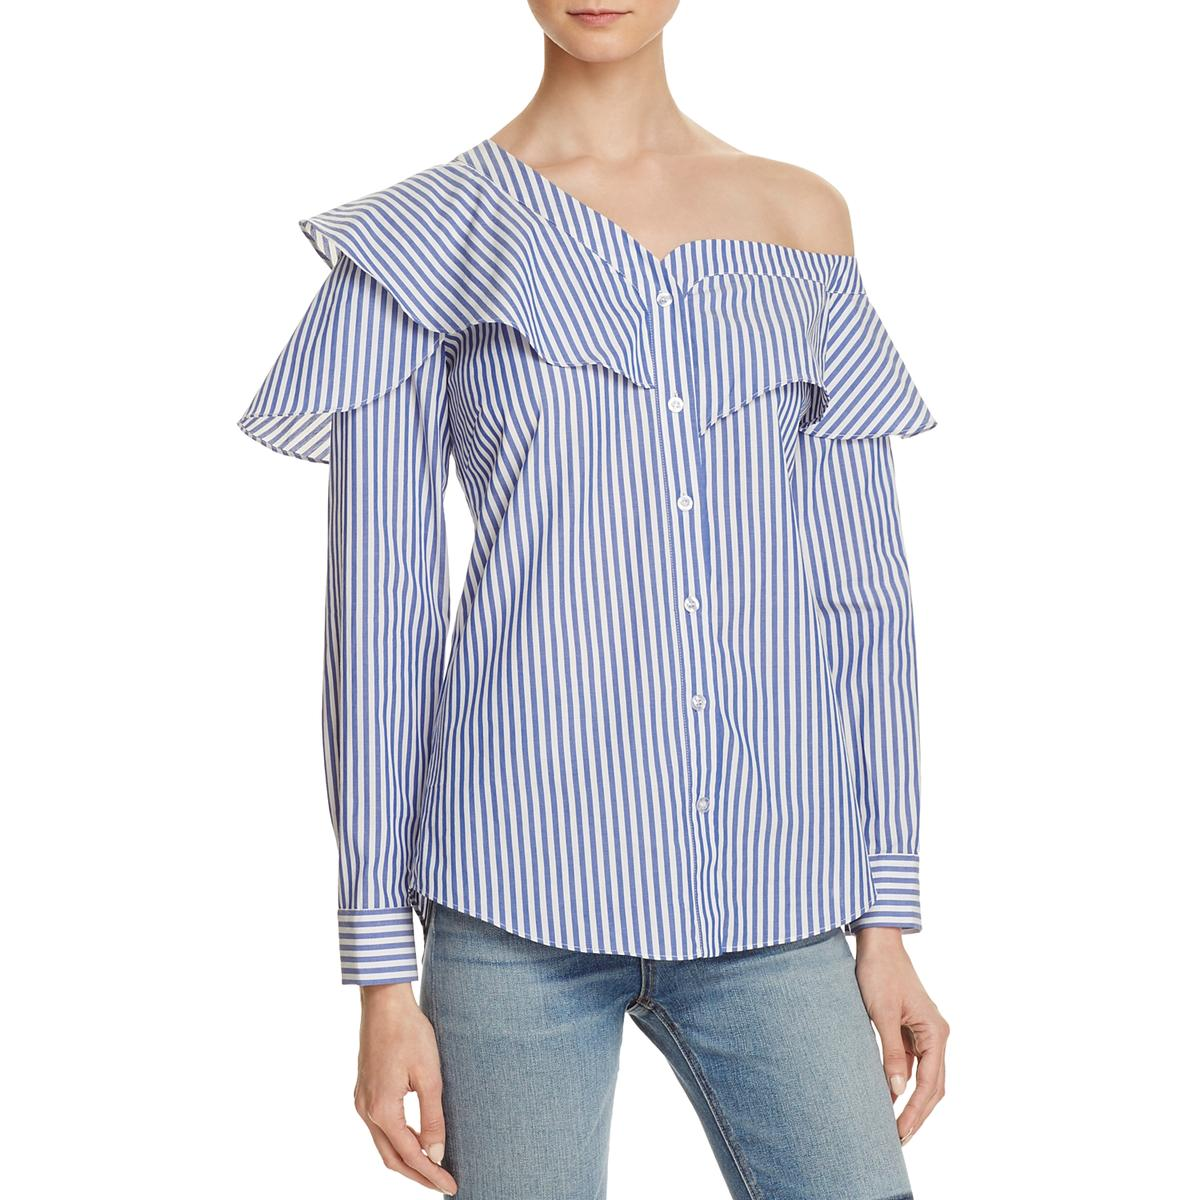 0bf1133e51d7e6 Details about Bardot Womens Blue Ruffled Striped Button-Front Casual Top  Shirt S 6 BHFO 5707